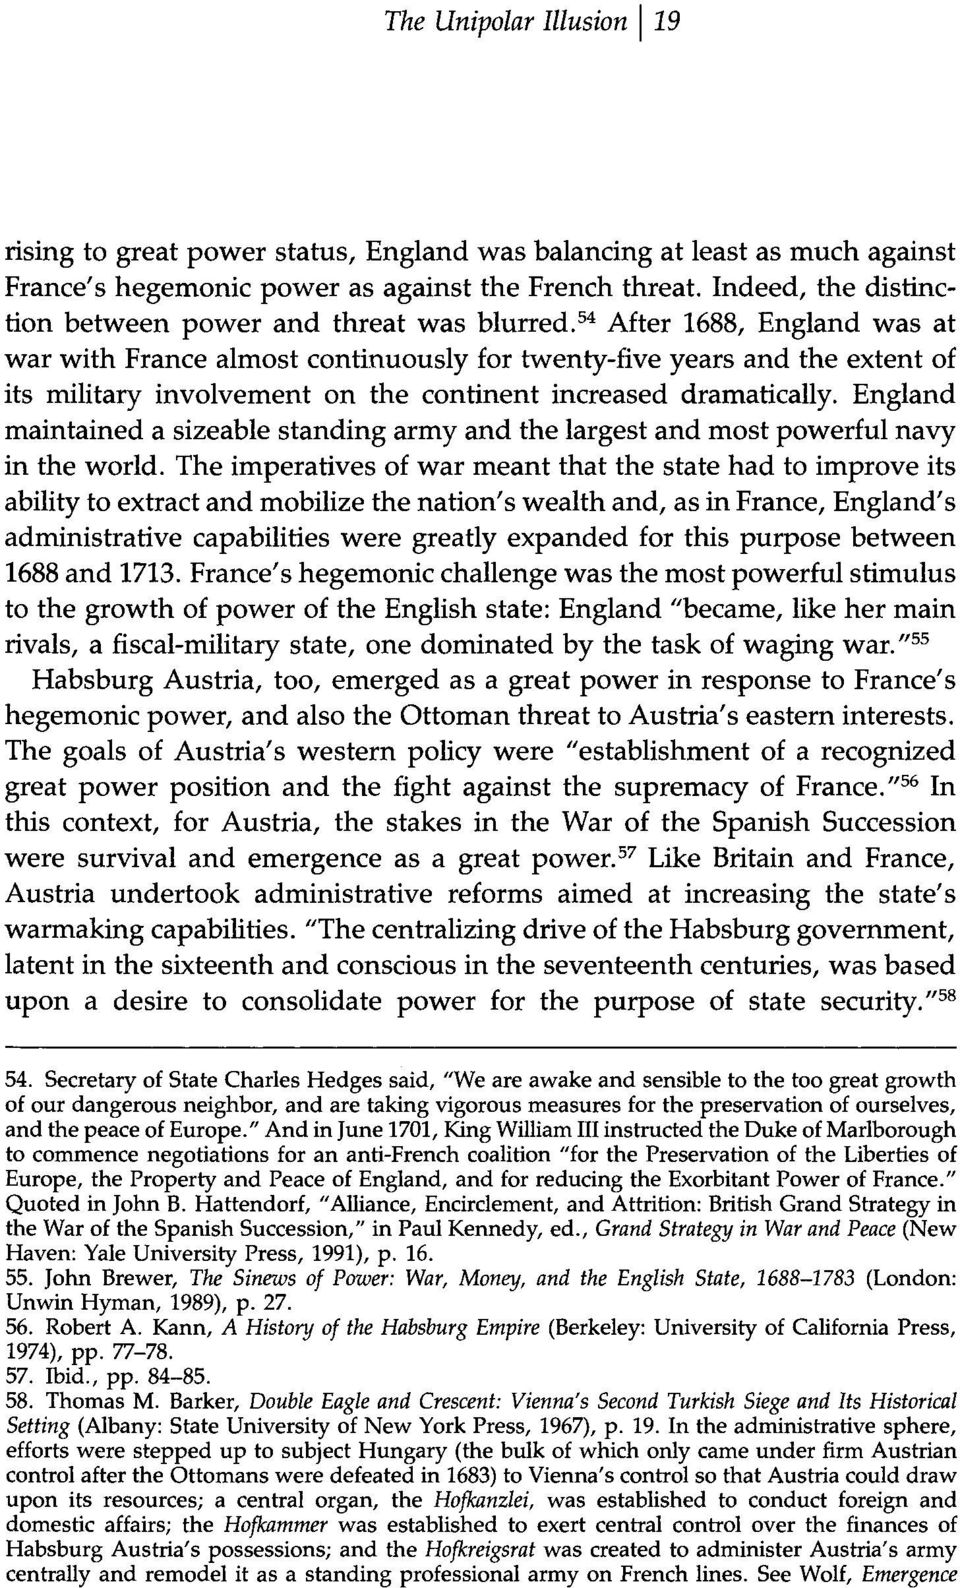 54 After 1688, England was at war with France almost continuously for twenty-five years and the extent of its military involvement on the continent increased dramatically.